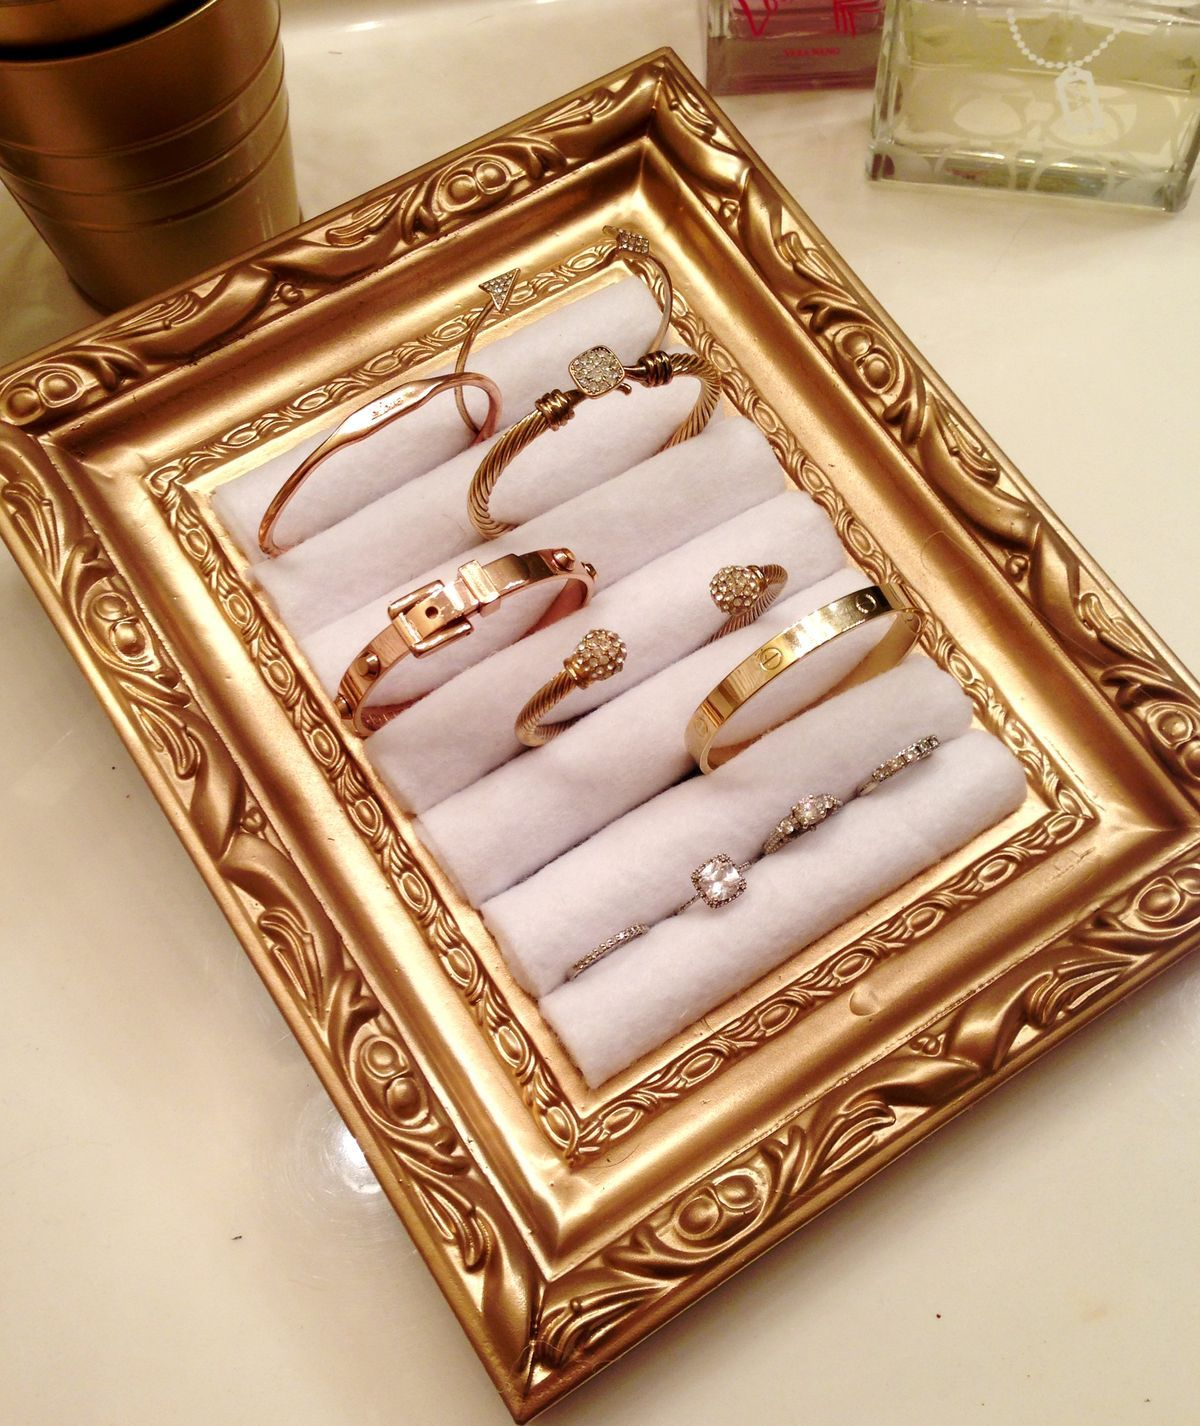 25+ Awesome DIY Jewelry Box Plans for Men\'s and Girls | Display, Box ...